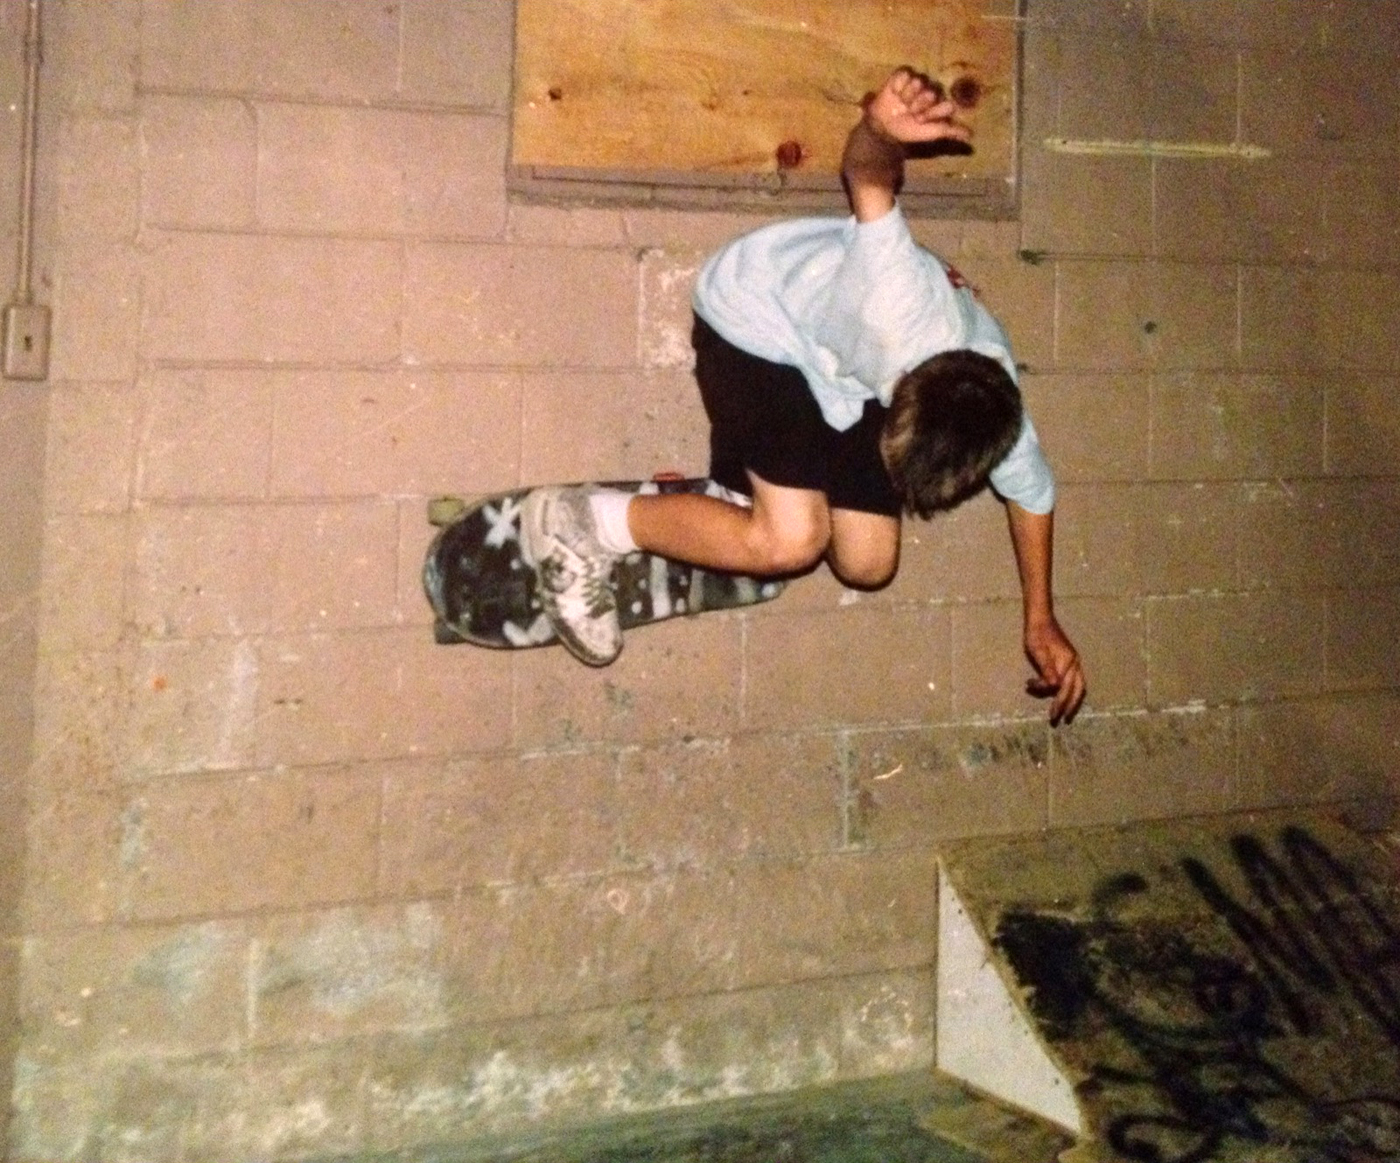 Dave barging a wallride in 1986. Chicago, IL.